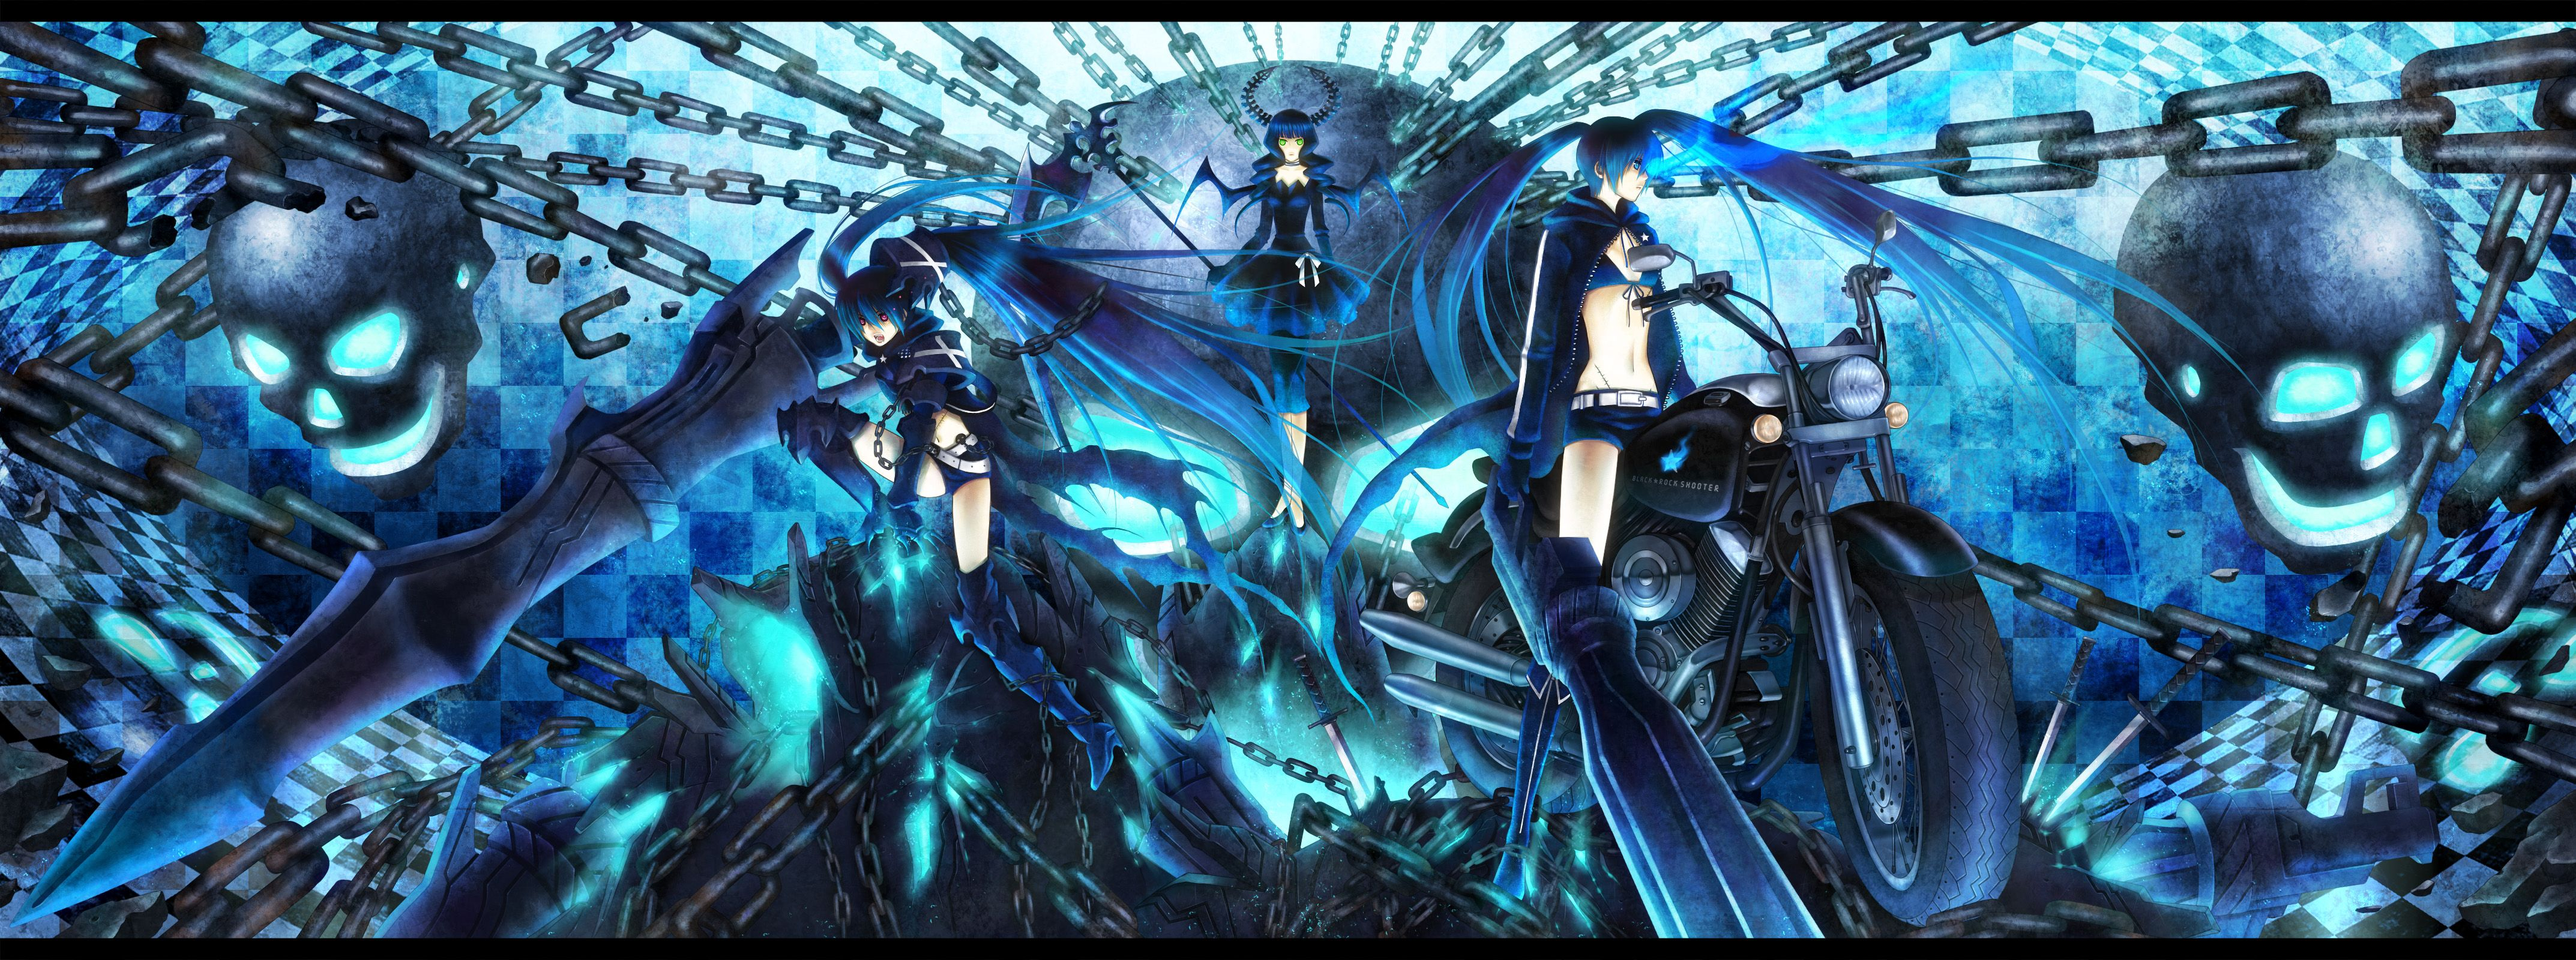 Black Rock Shooter Dual Screen Wallpaper 록 캐릭터 일러스트 그림